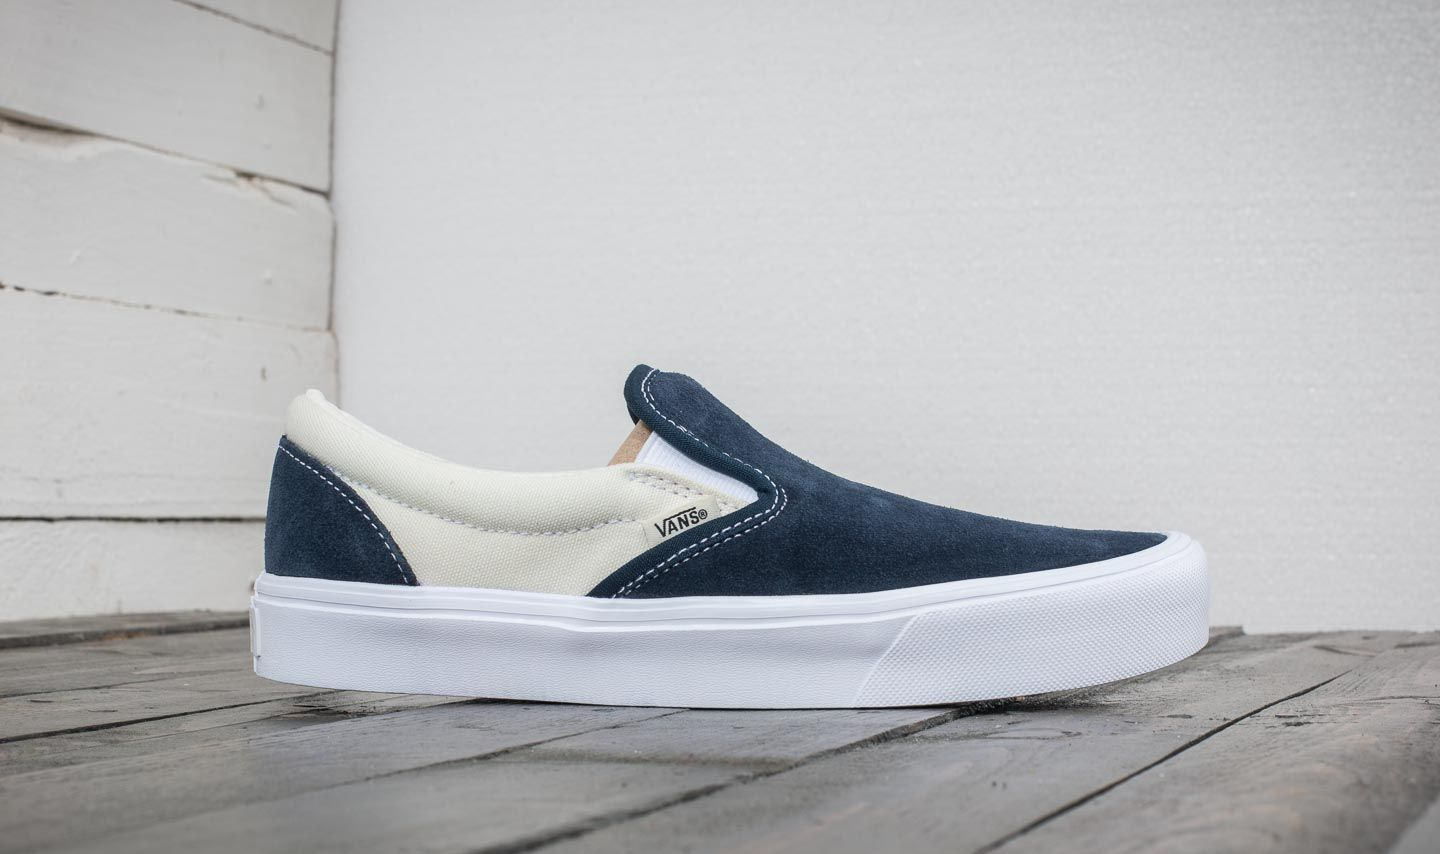 Vans Slip-On (Two-Tone) Dress Blue  Marshmallow at a great 7d72938caf61